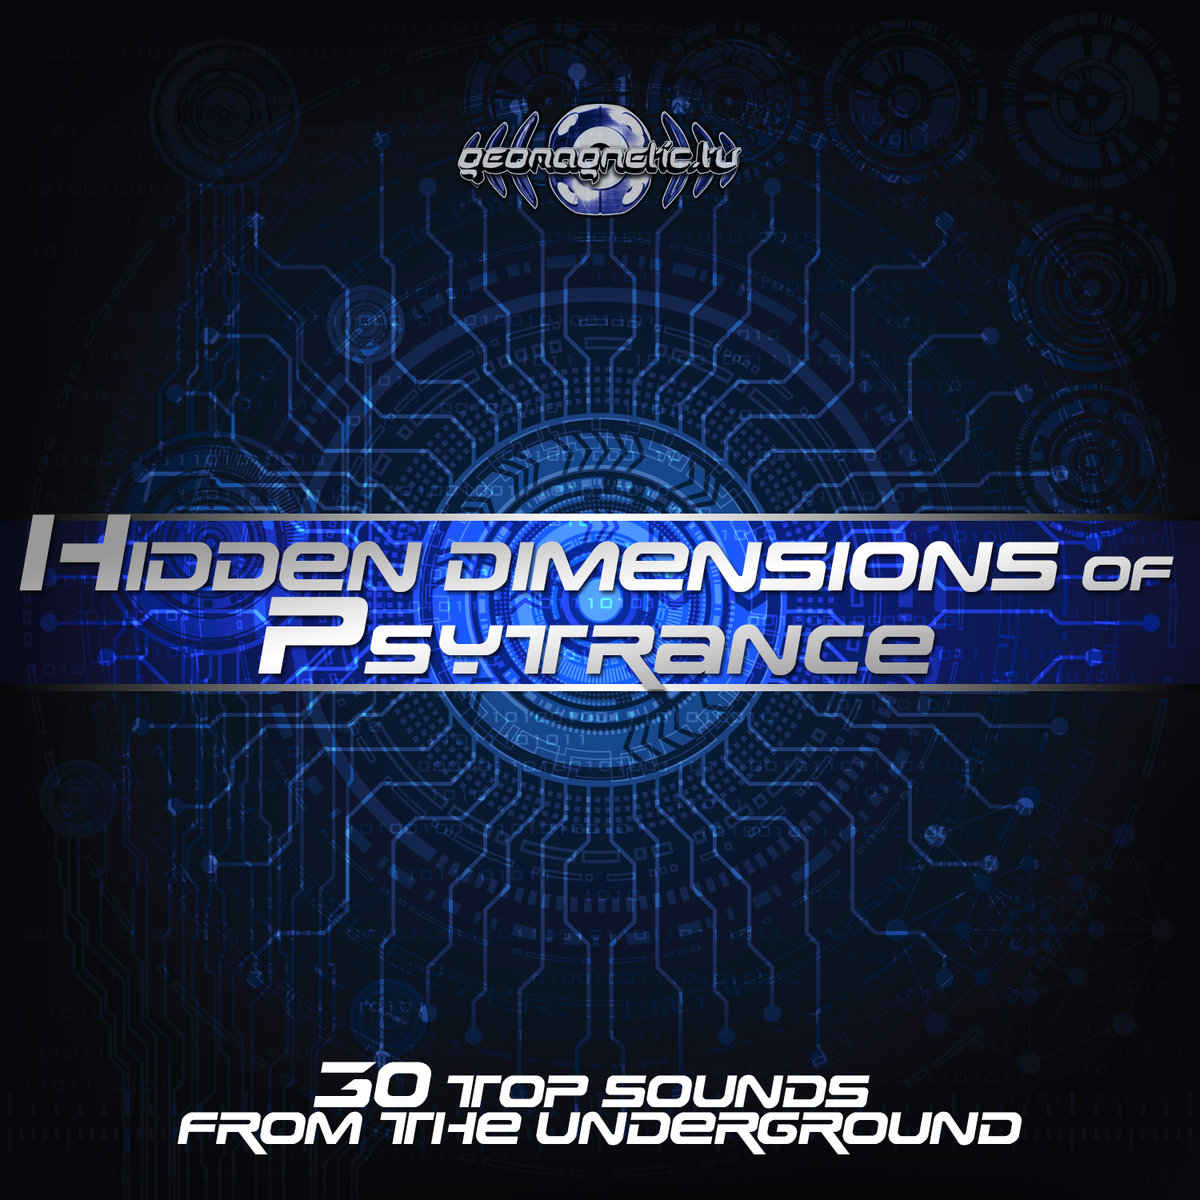 Sychovibes - Opsygen @ 'Various Artists - Hidden Dimensions of Psytrance (30 Top Sounds From The Underground)' album (electronic, goa)